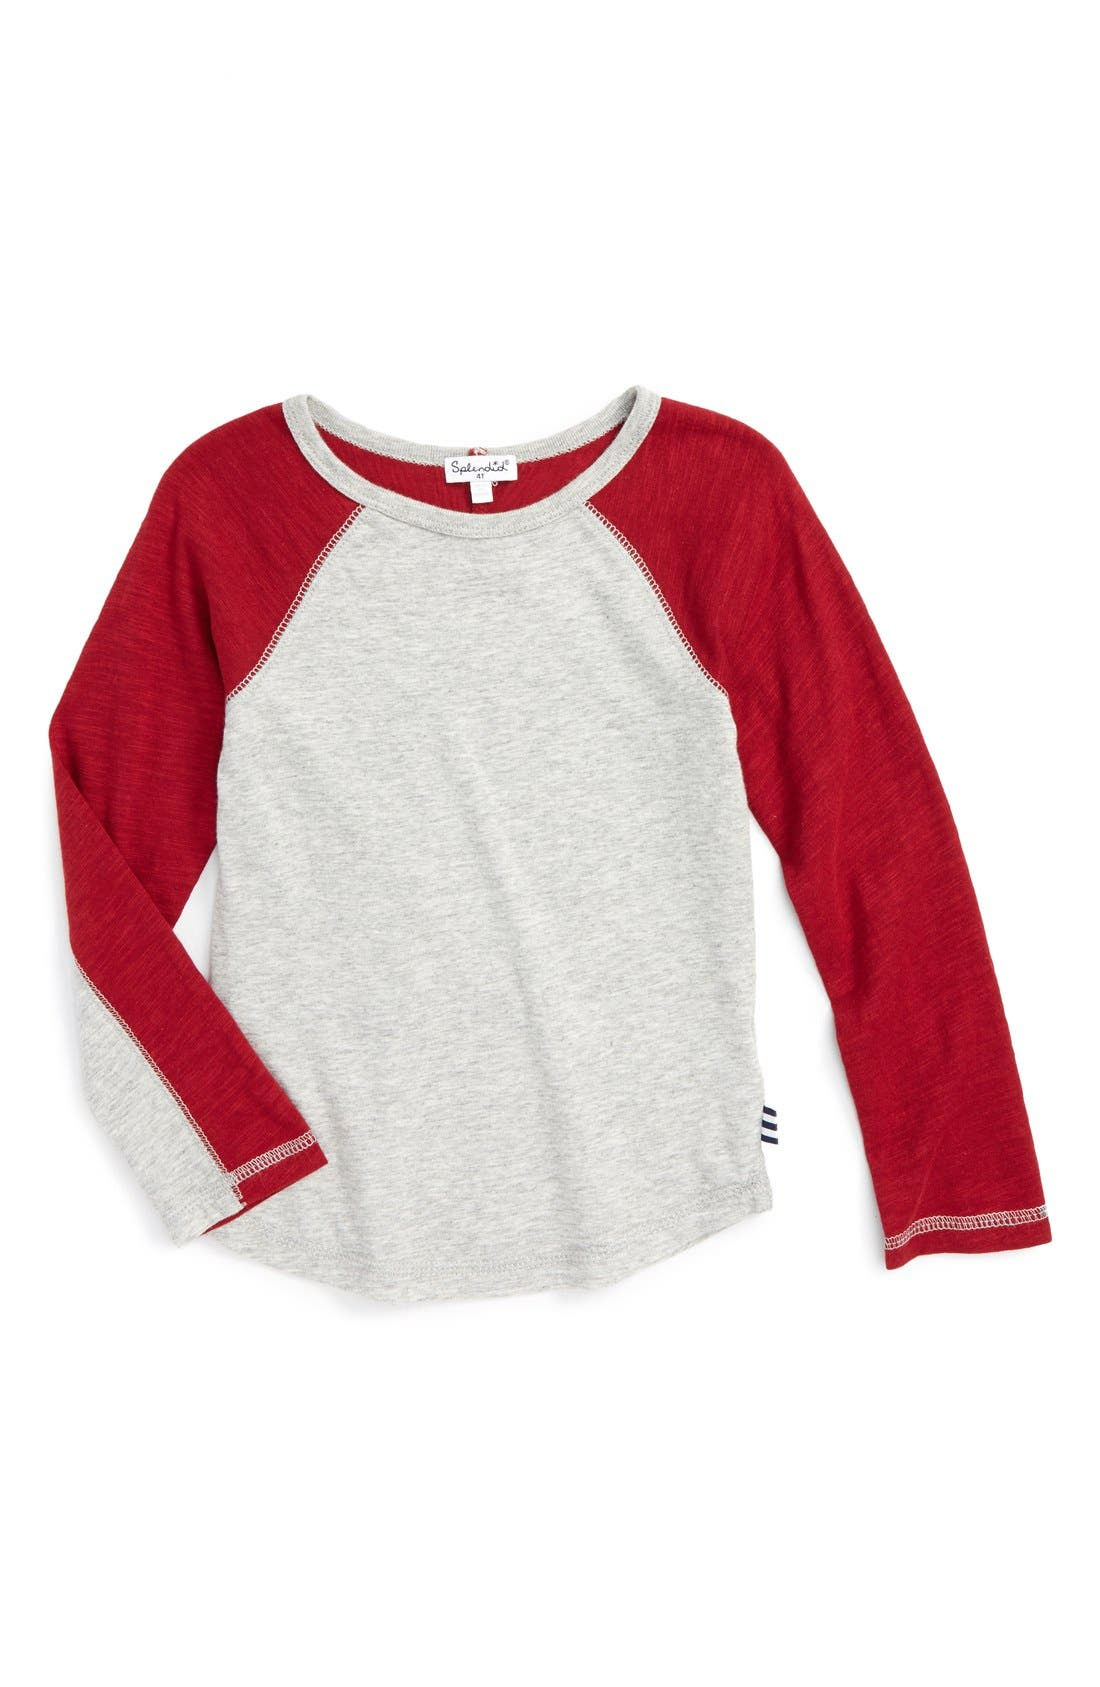 Main Image - Splendid Slub Knit T-Shirt (Toddler Boys & Little Boys)